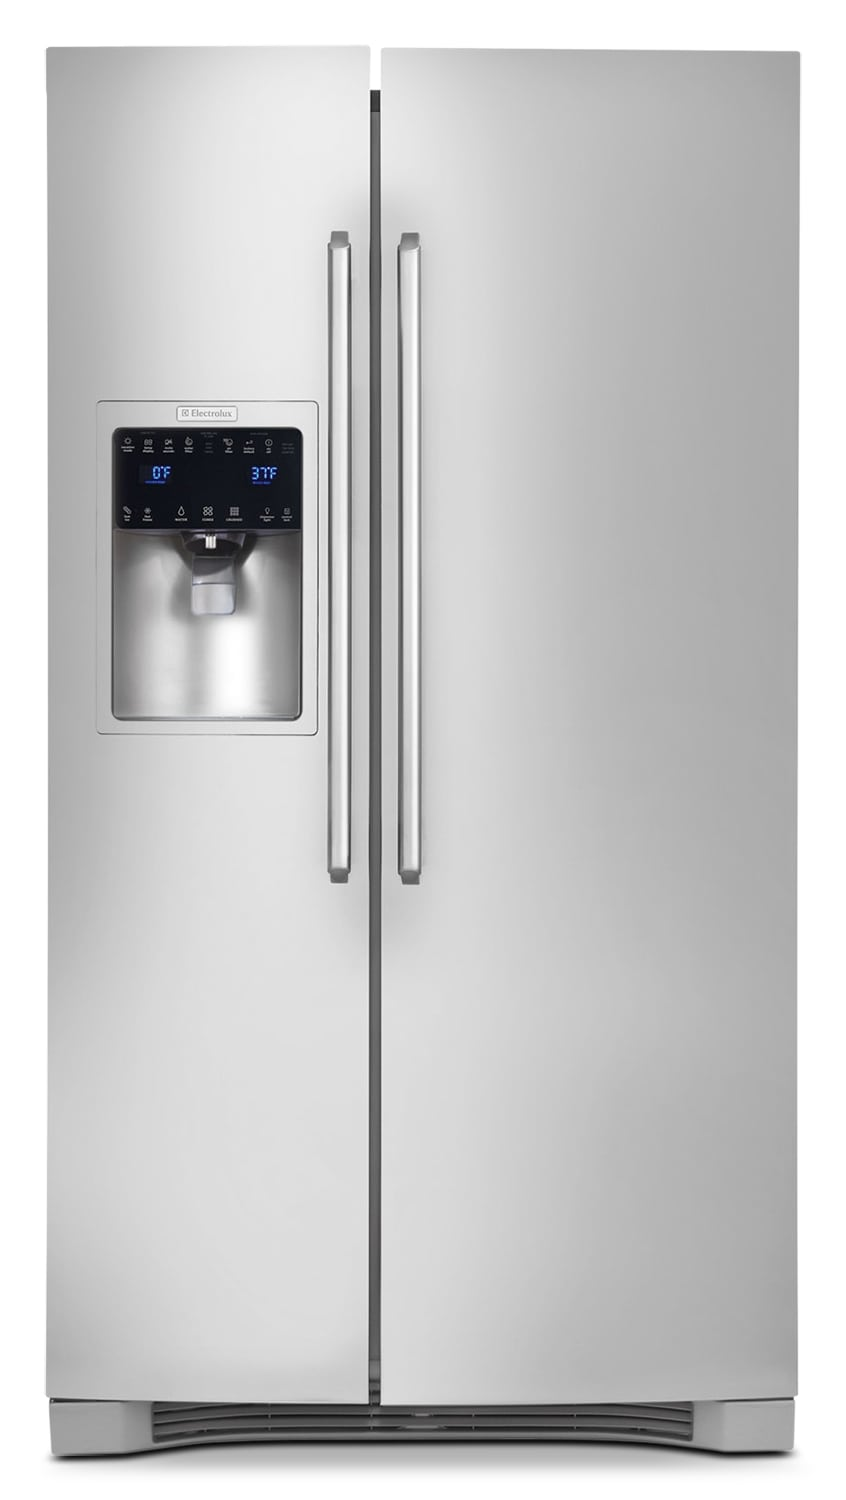 Electrolux Stainless Steel Counter-Depth Side-by-Side Refrigerator (22.67 Cu. Ft.) - EI23CS65KS